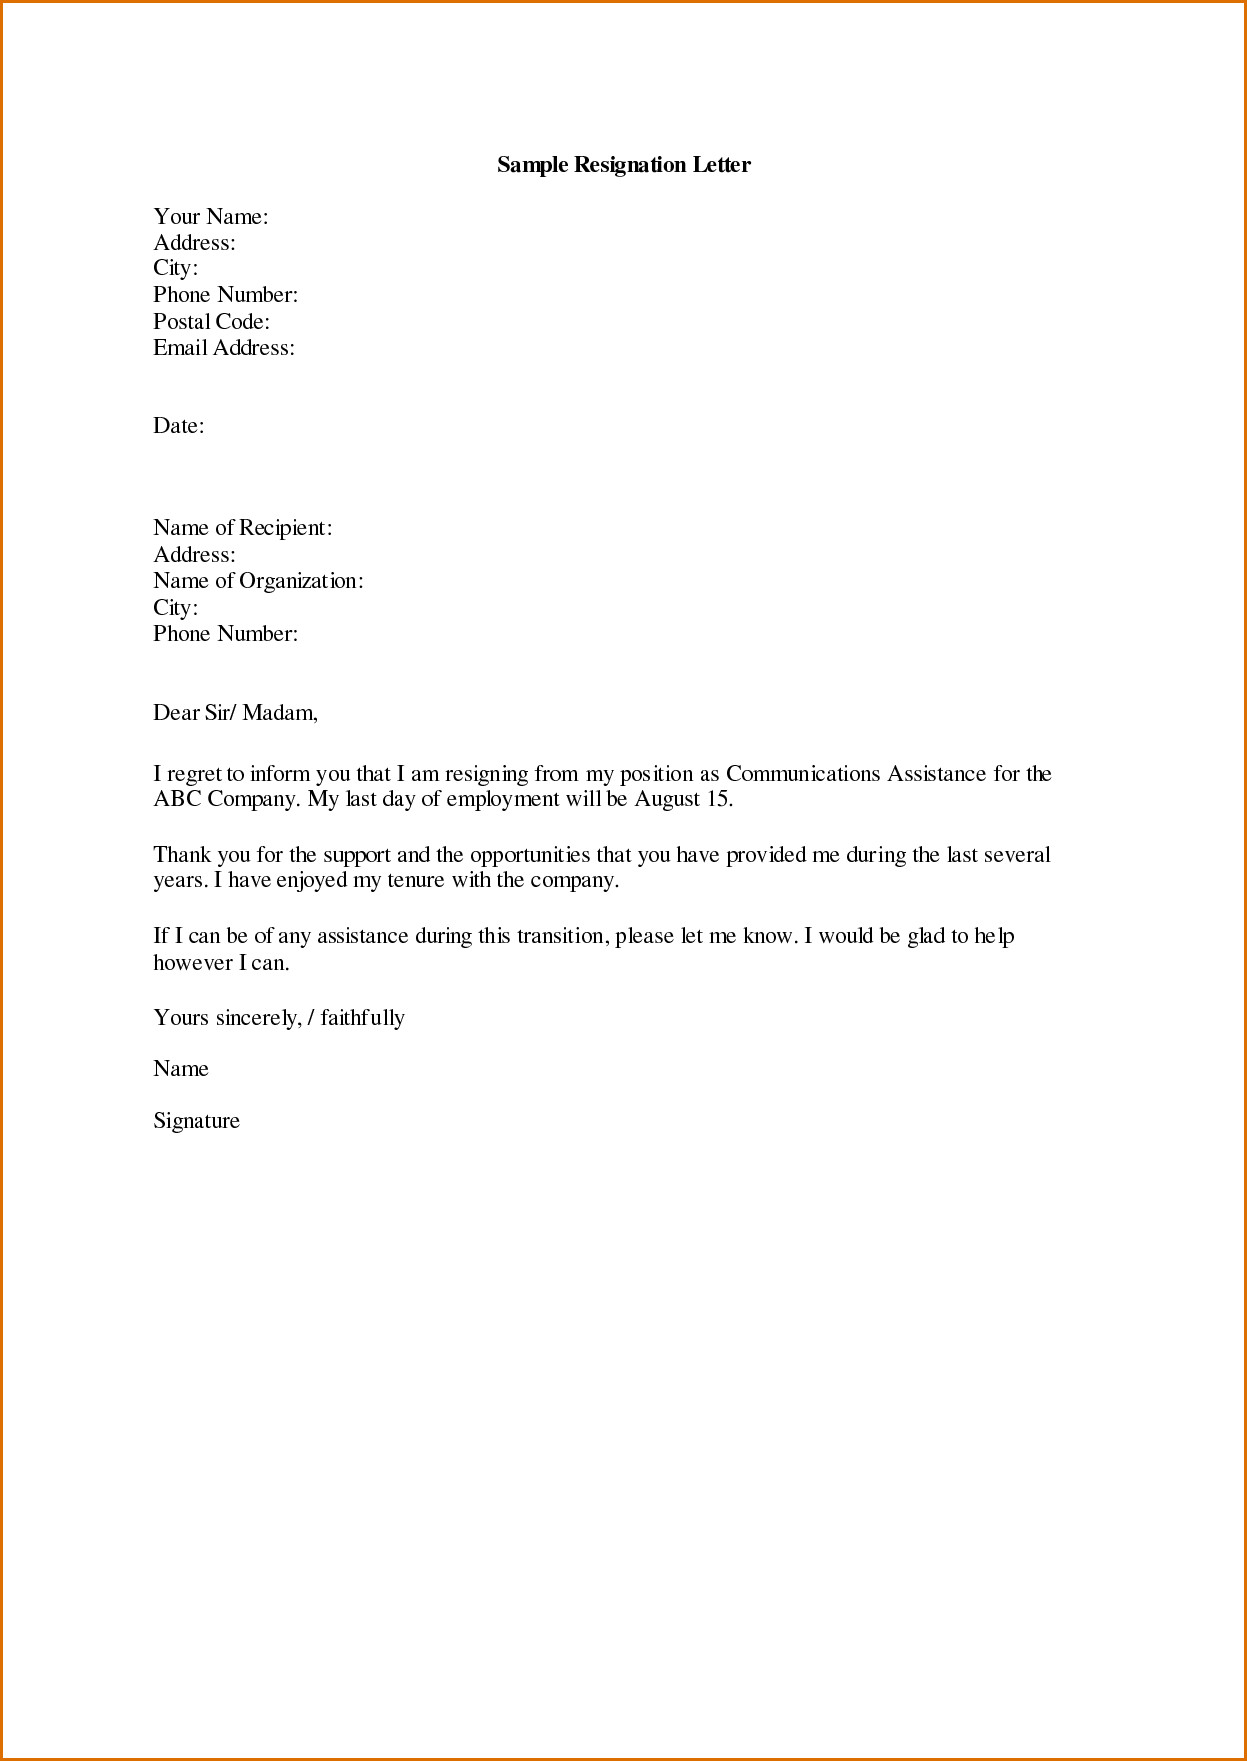 Letter Of Resignation Templates Word Sample Displaying 16 Images for Letter Of Resignation